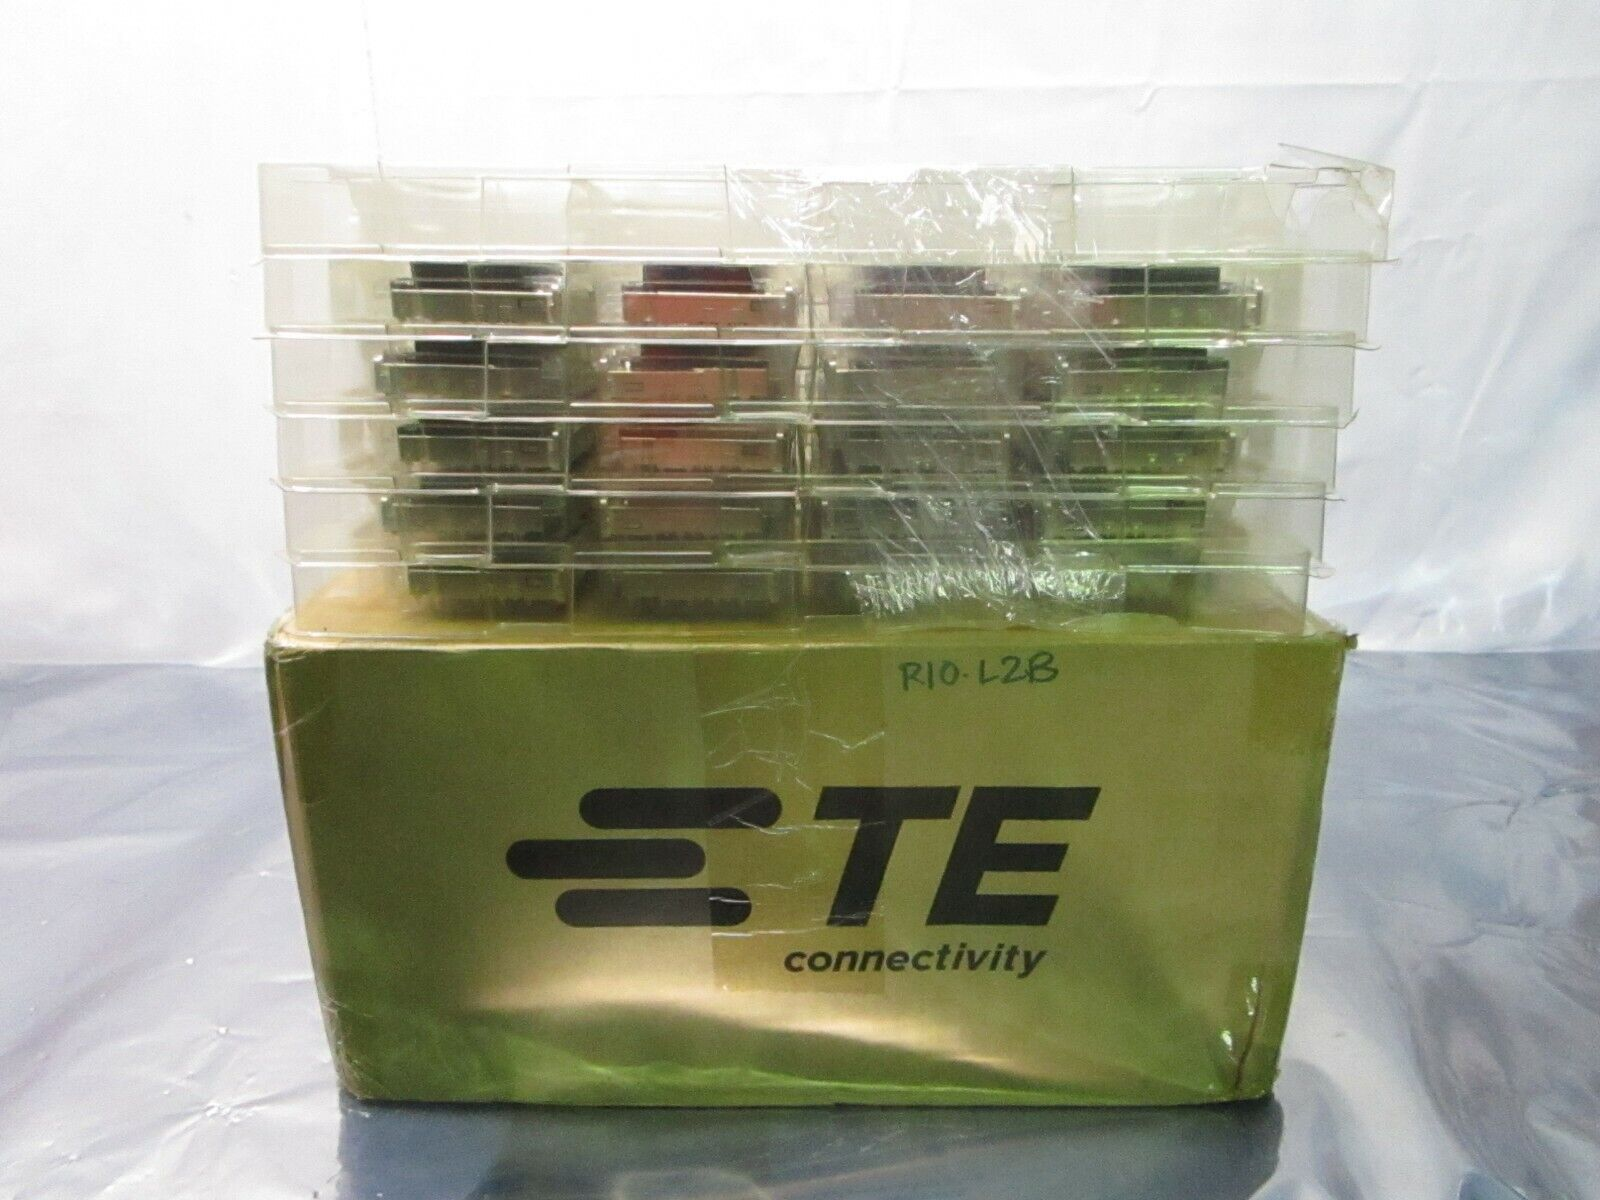 1 Lot of 40 TE connectivity AMP Brand 2170551-1 1X6 CAGE ASSEMBLY, 102296